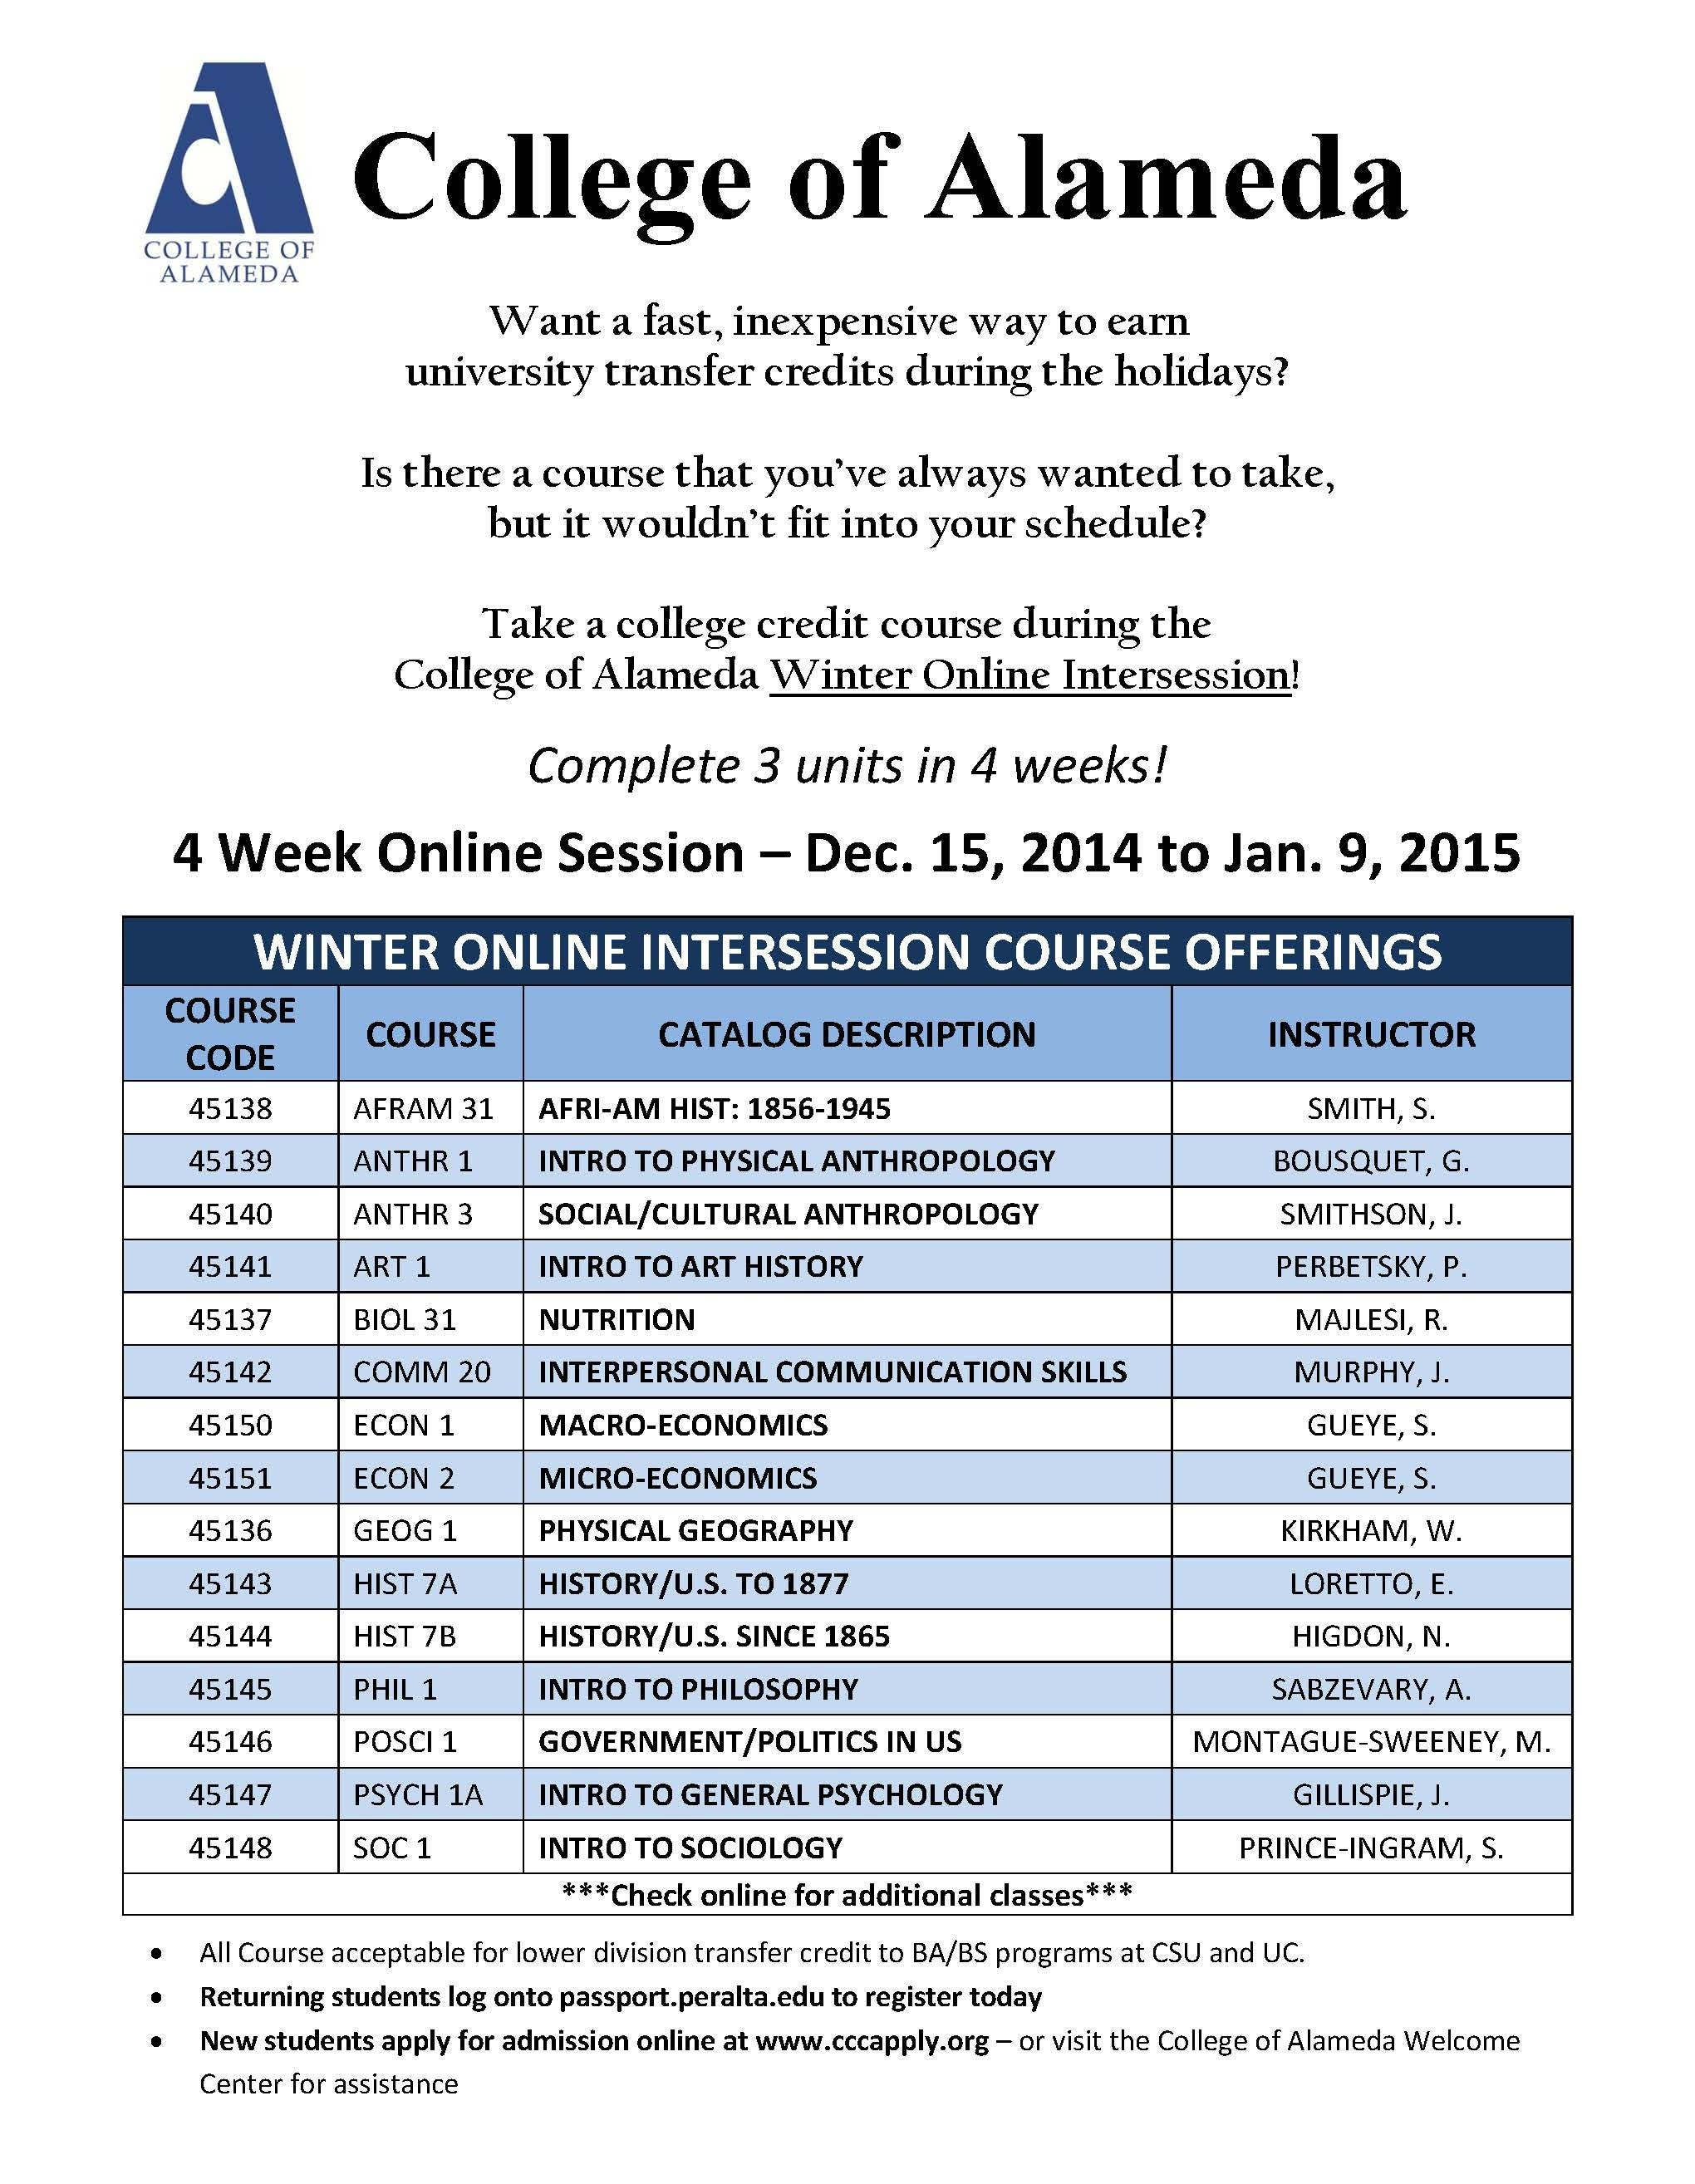 College of Alameda 4 Week Winter Online Session! Enroll TODAY